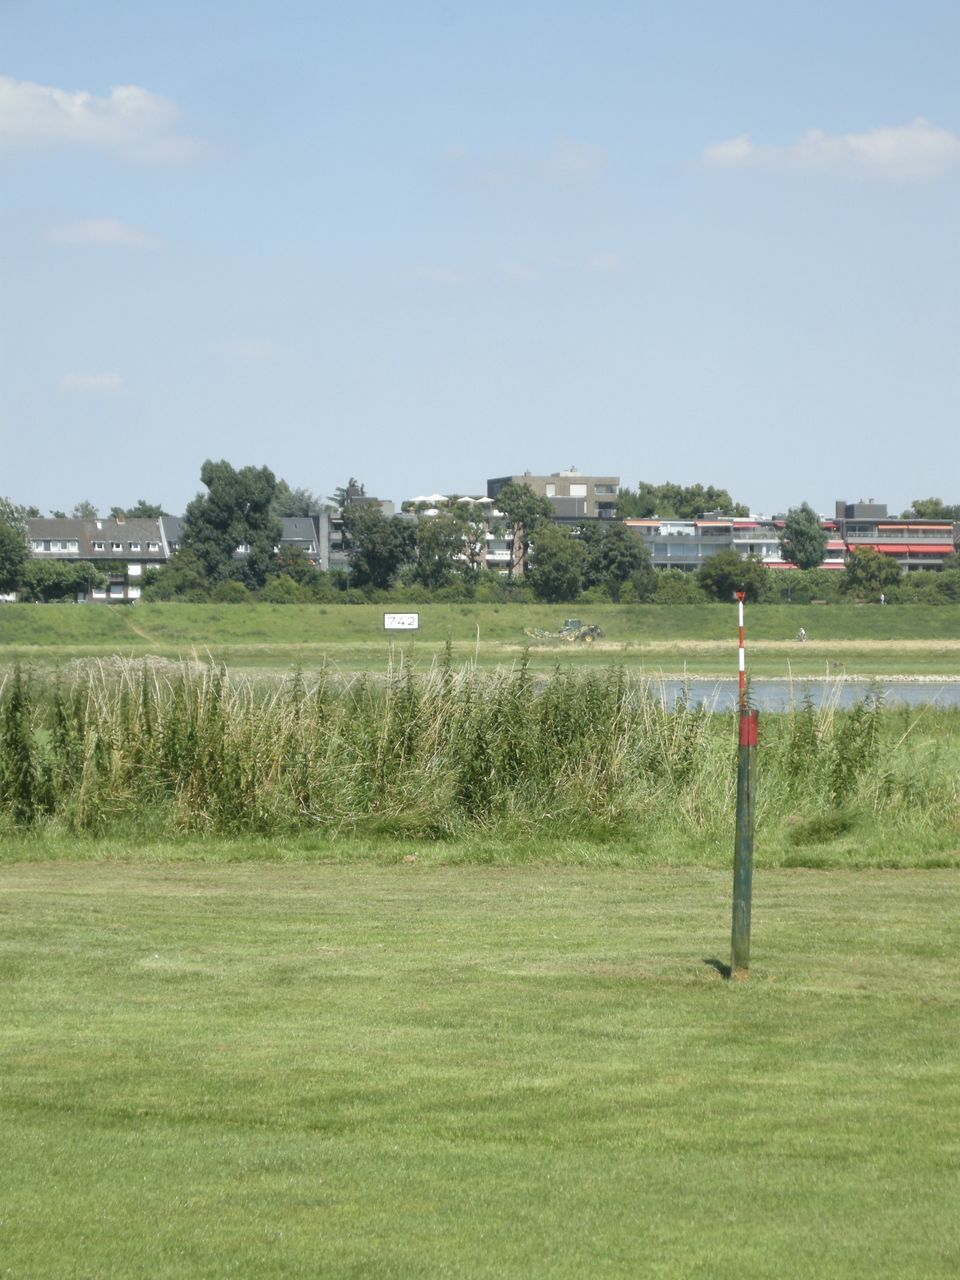 grass, sky, field, day, no people, tranquility, outdoors, playing field, sport, tree, goal post, scenics, cloud - sky, nature, landscape, beauty in nature, soccer field, golf, green - golf course, golf course